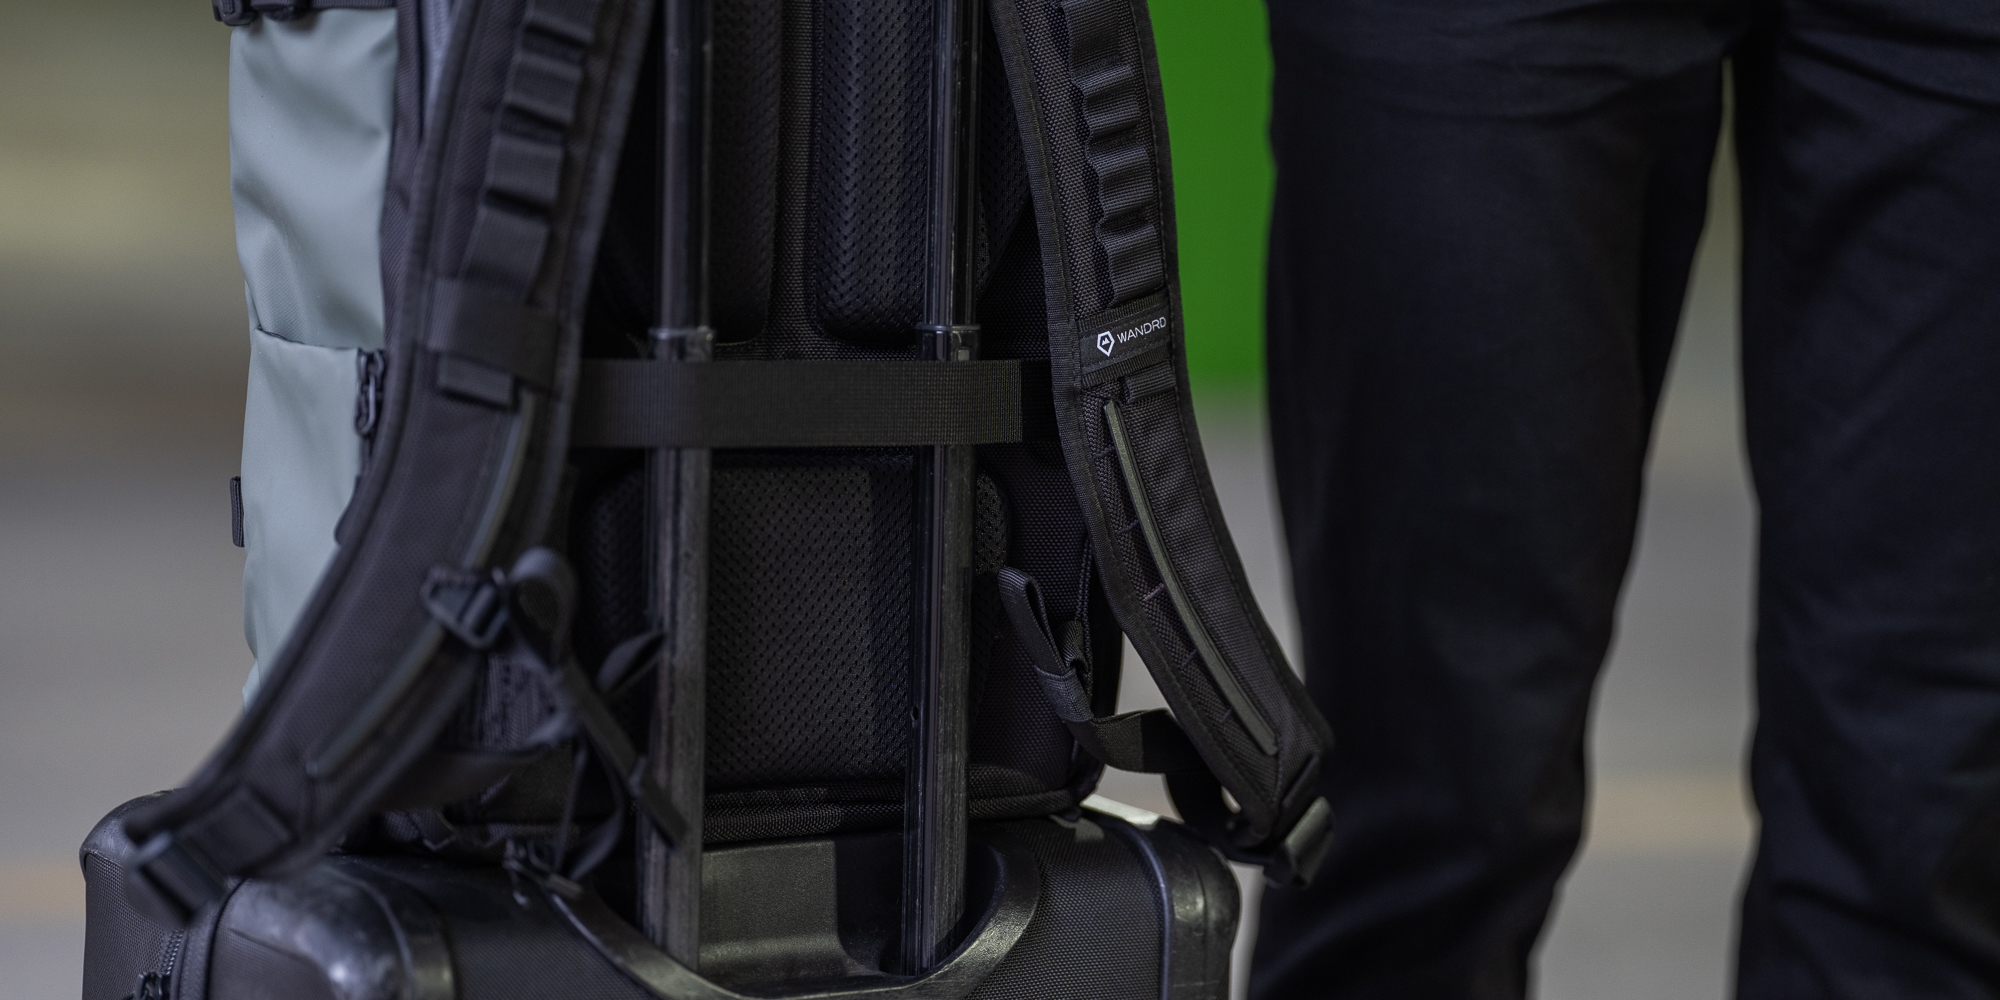 Wandrd All-new Prvke 21 Backpack - The Perfect Travel Companion